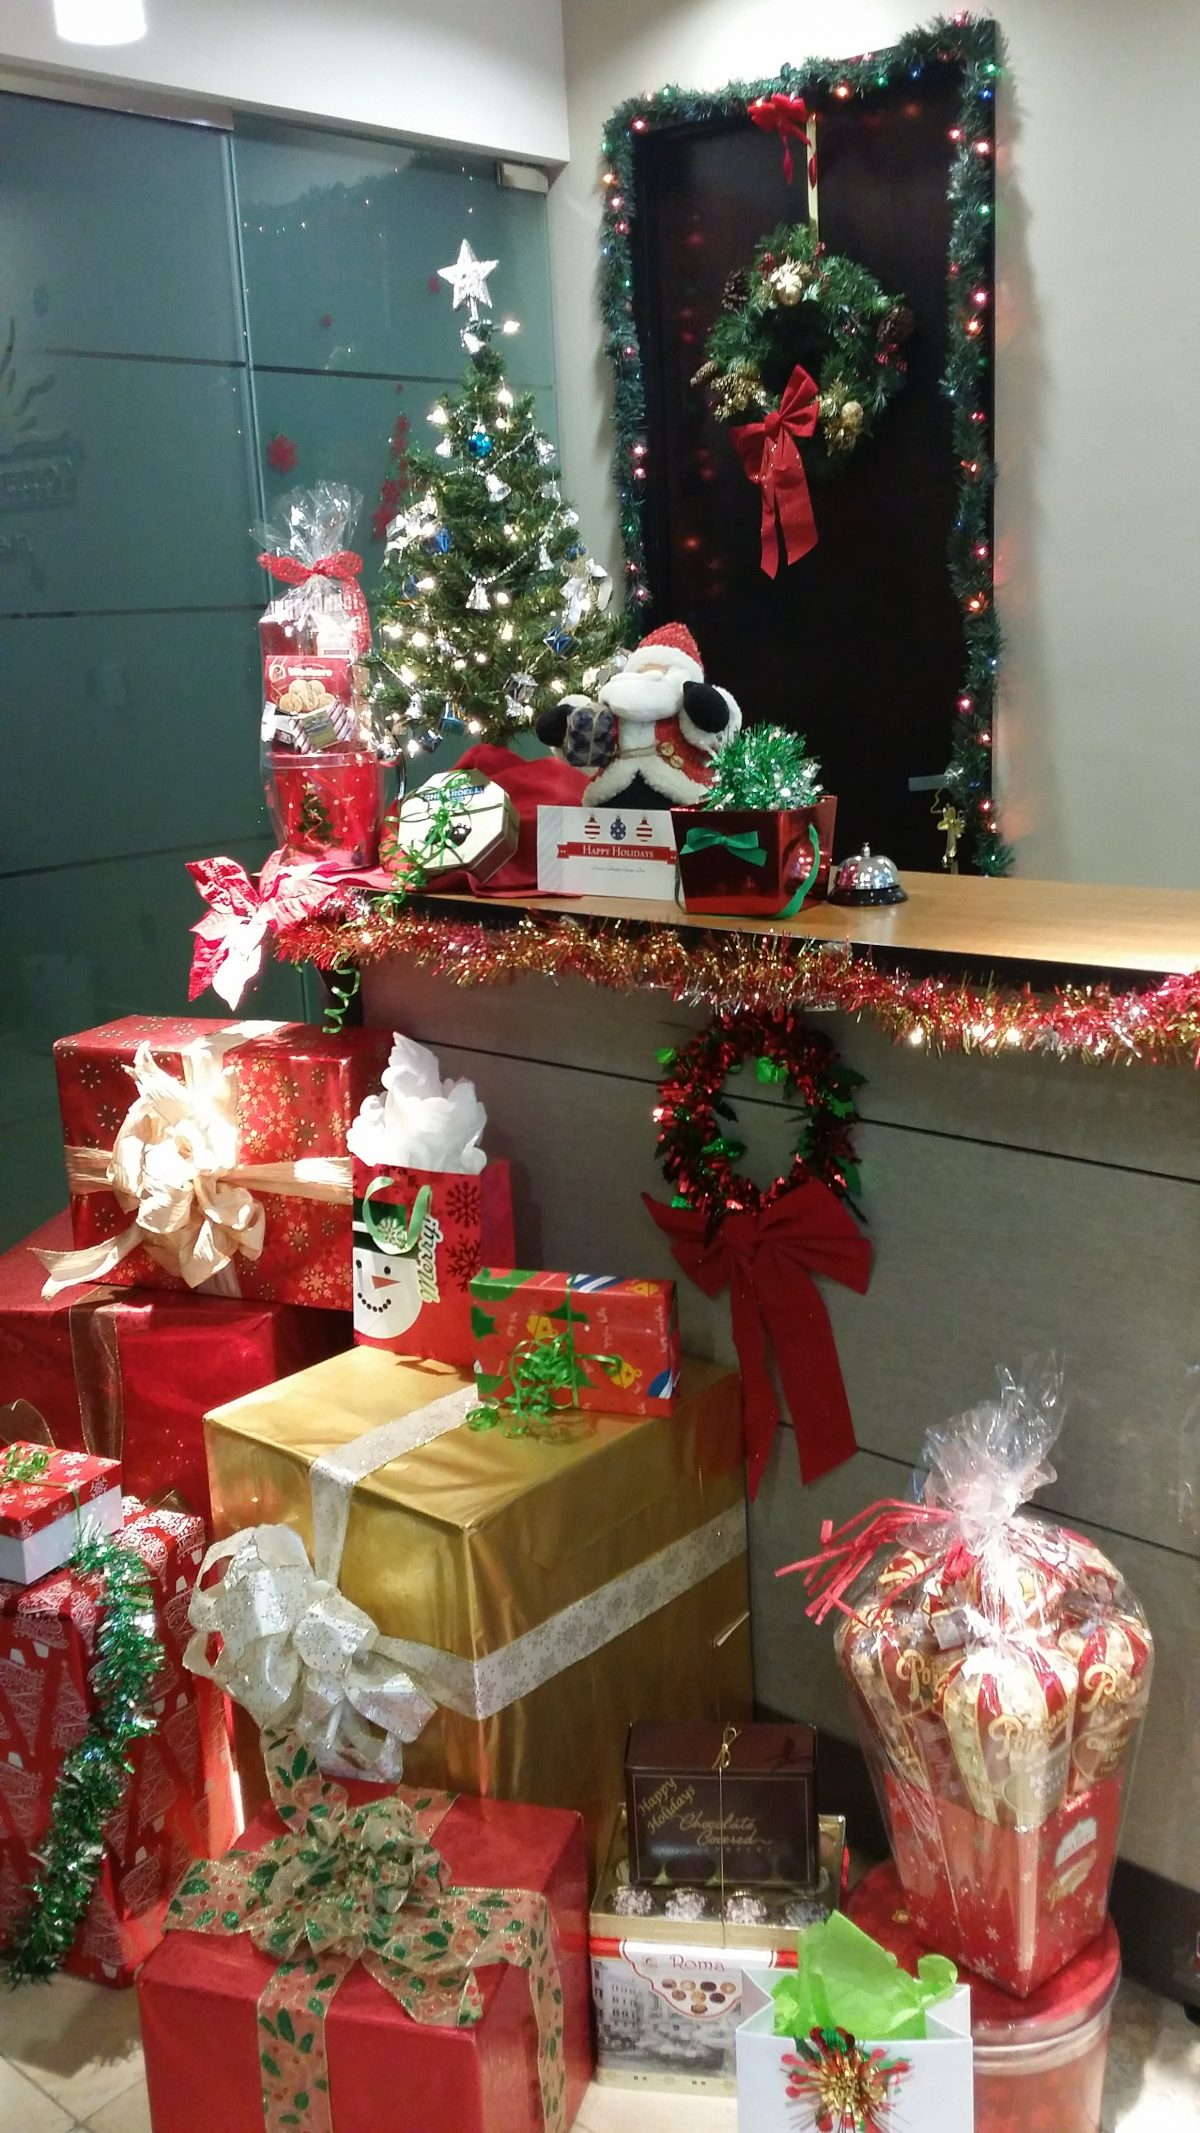 Happy Holidays from the GoldenWest Management Las Vegas Office